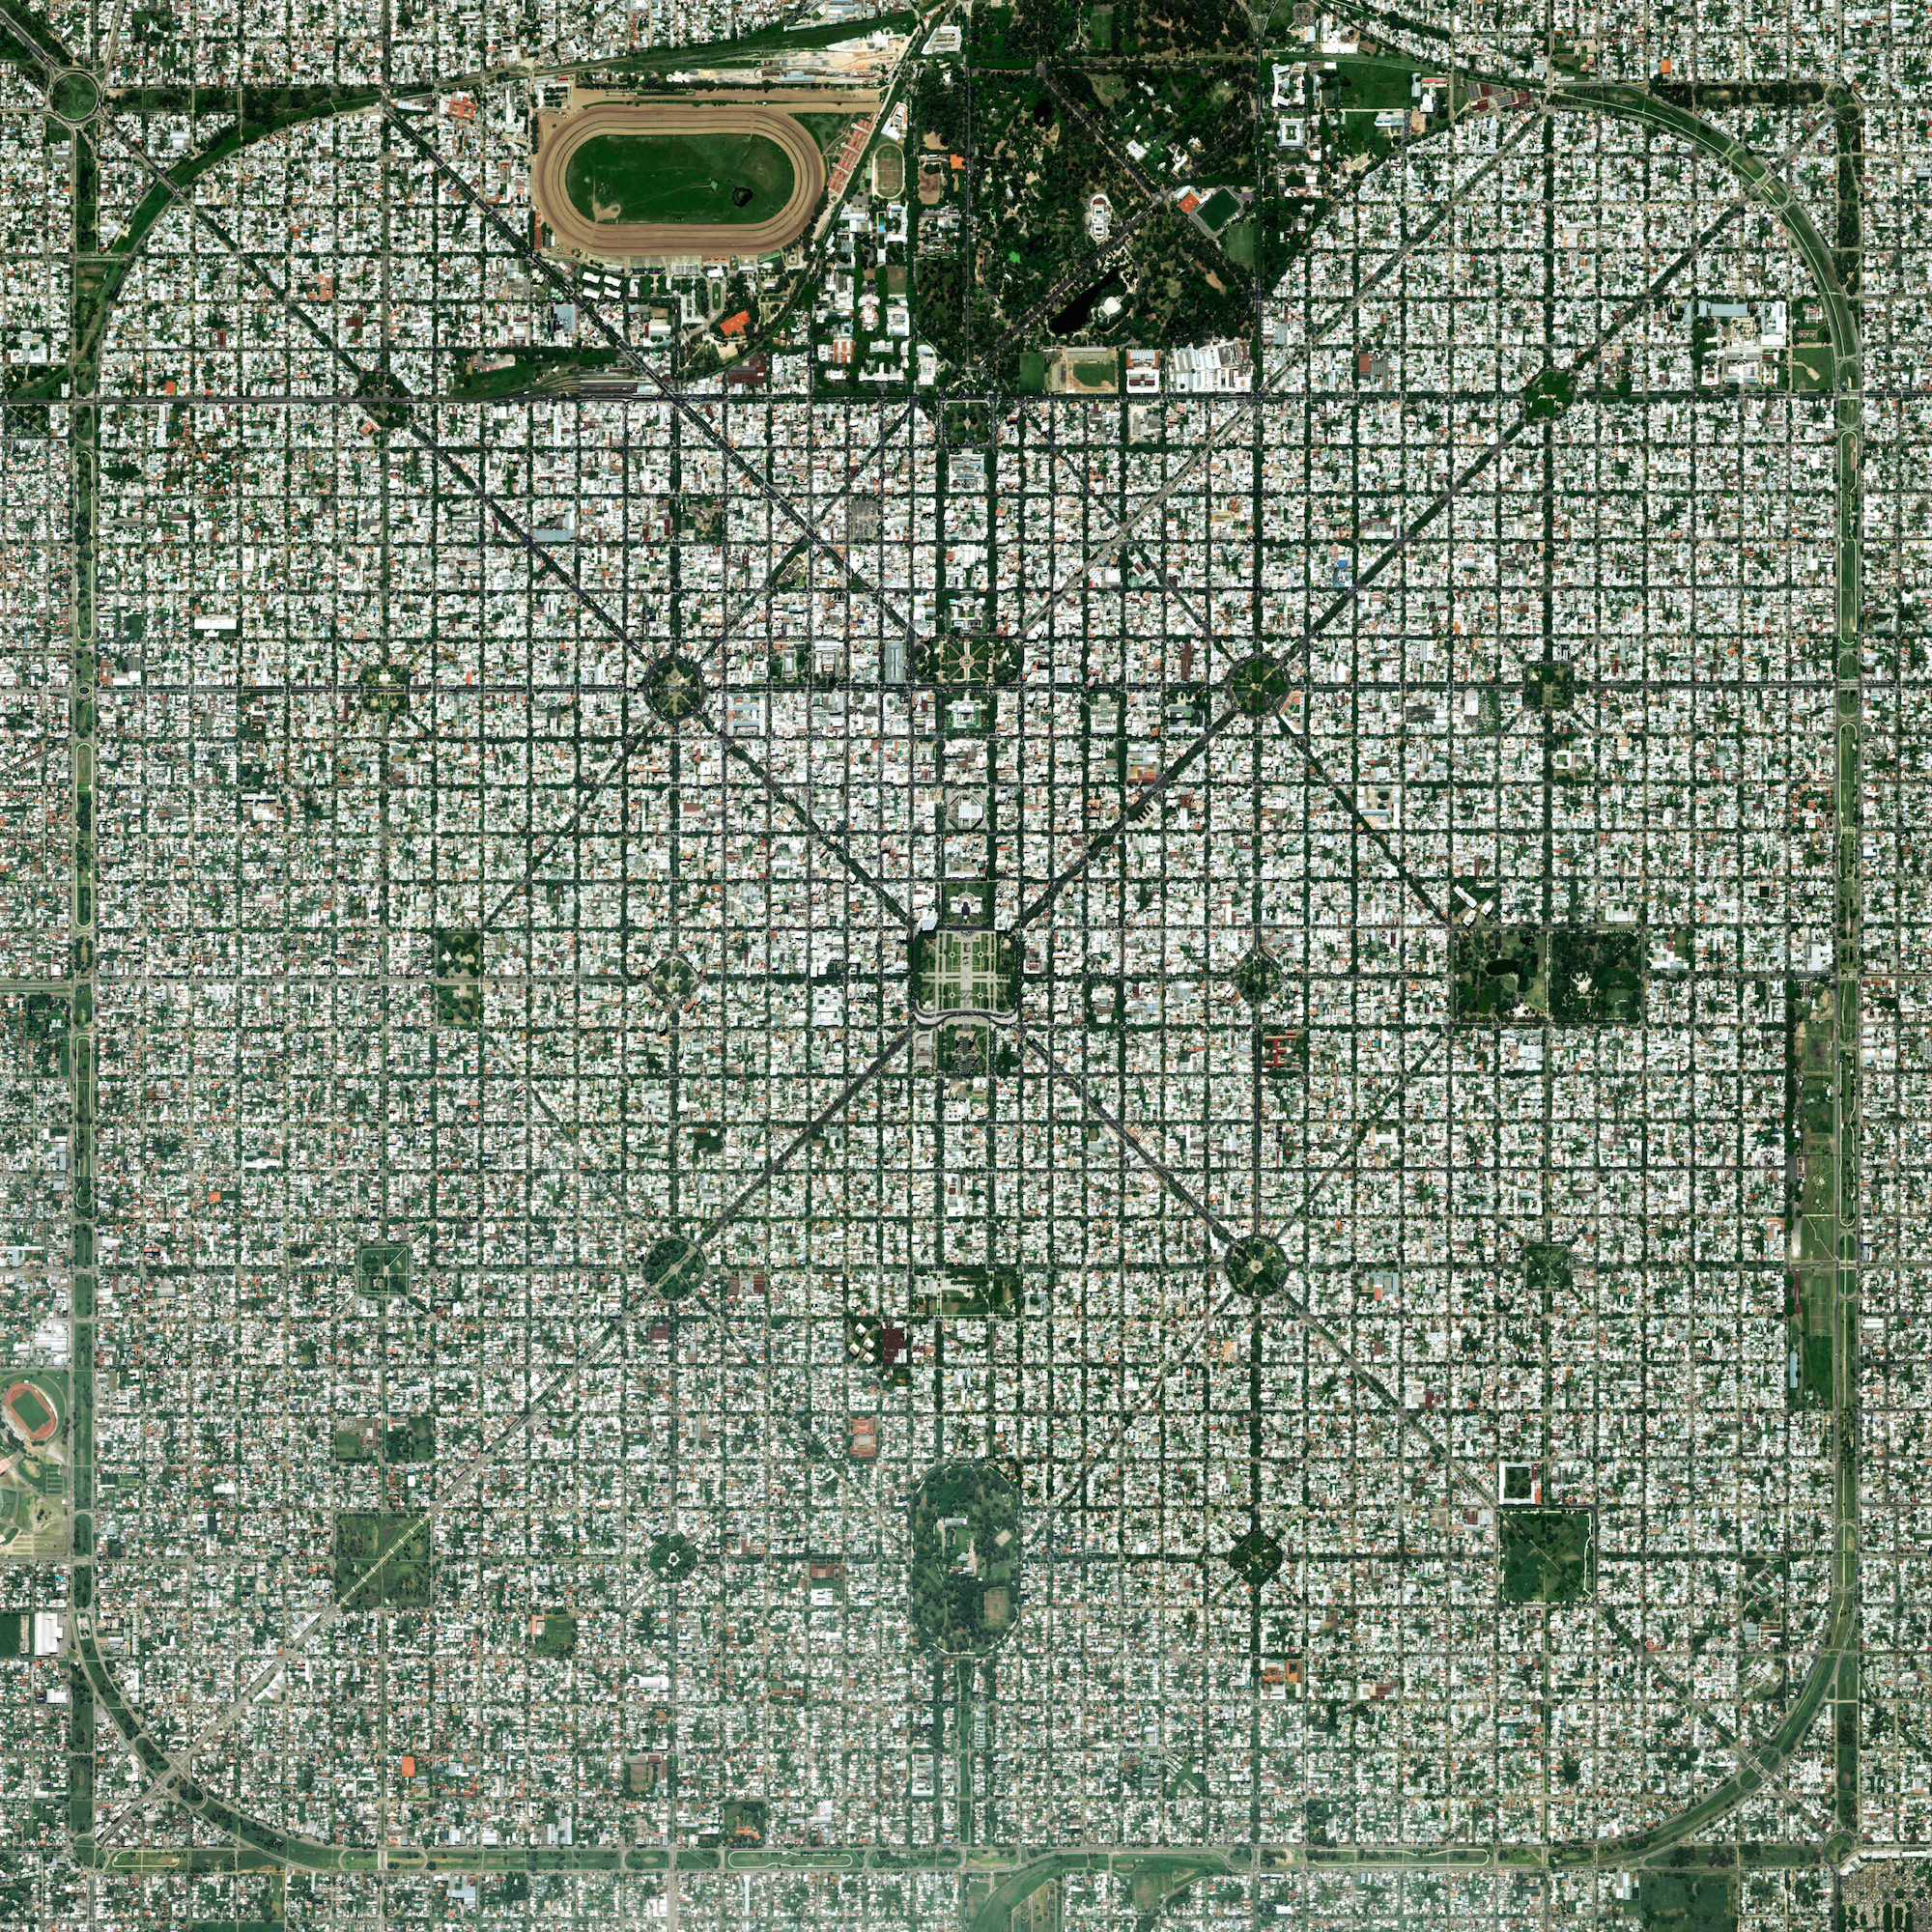 """8/26/2016   La Plata   Buenos Aires, Argentina   34°55′16″S 57°57′16″W     The planned city of La Plata, the capital city of the Province of Buenos Aires, is characterized by its strict grid pattern. At the 1889 World's Fair in Paris, the new city was awarded two gold medals for the """"City of the Future"""" and """"Better performance built."""" This is the fifth of seven posts in our week focused on urban planning."""